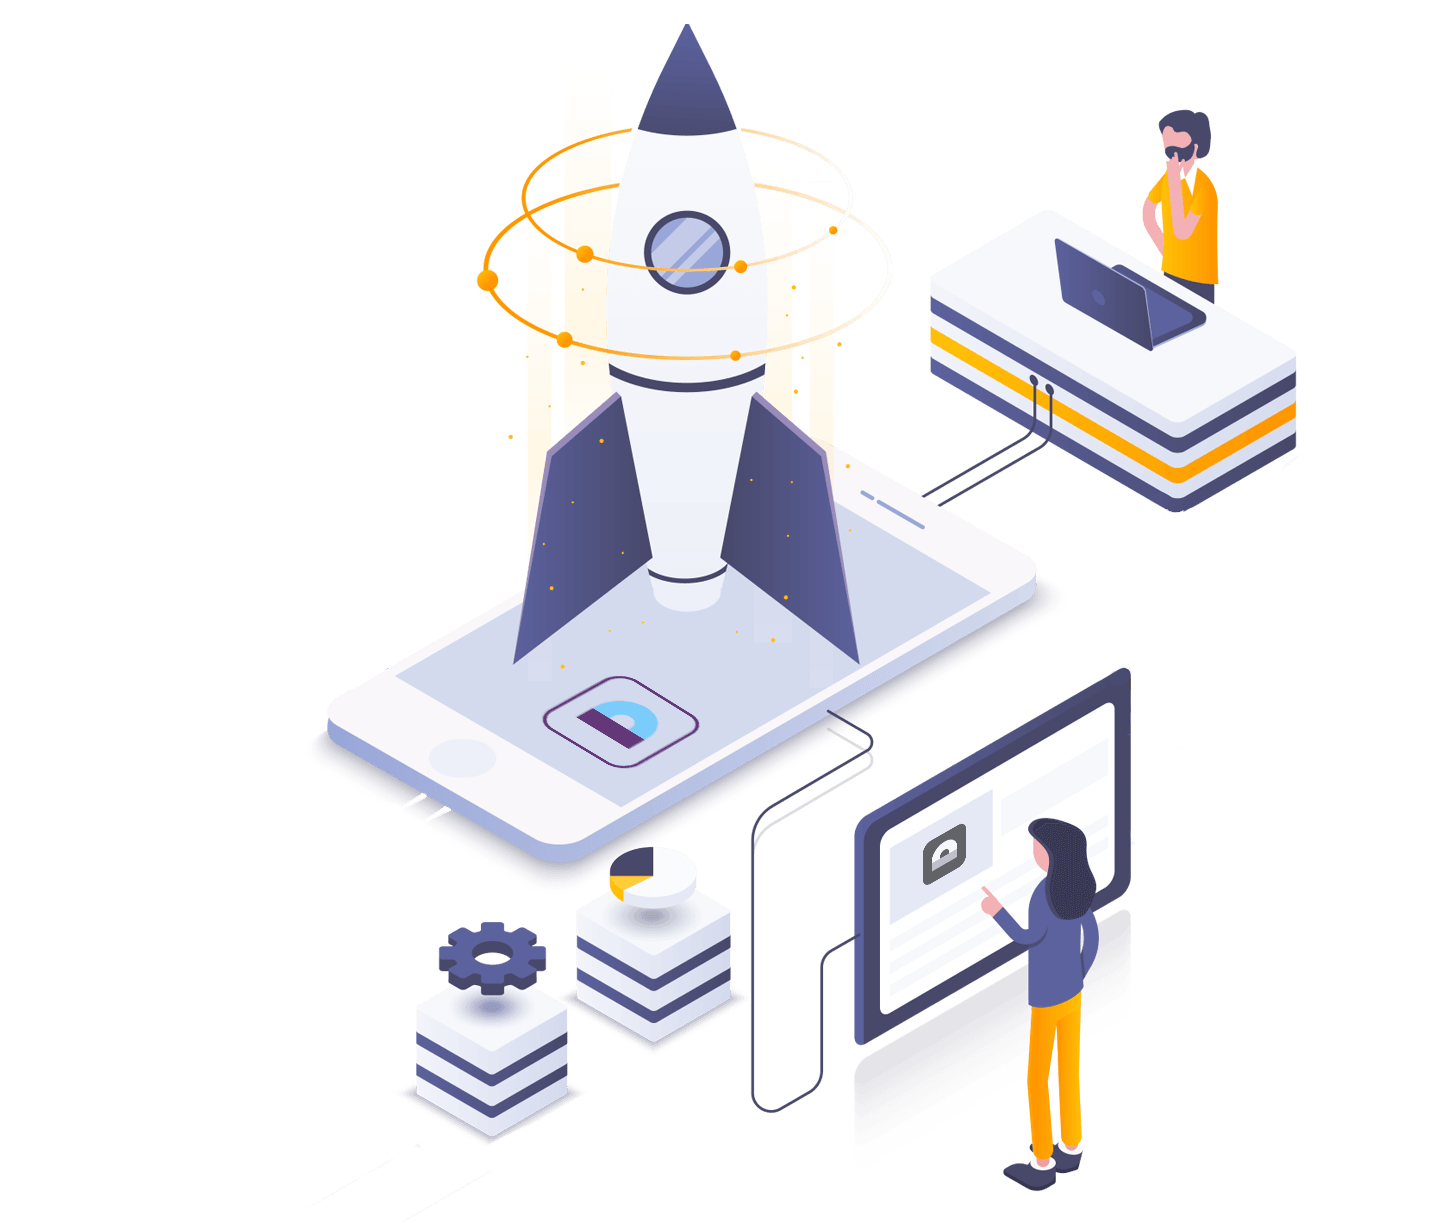 Rocket Isometric Illustration.png